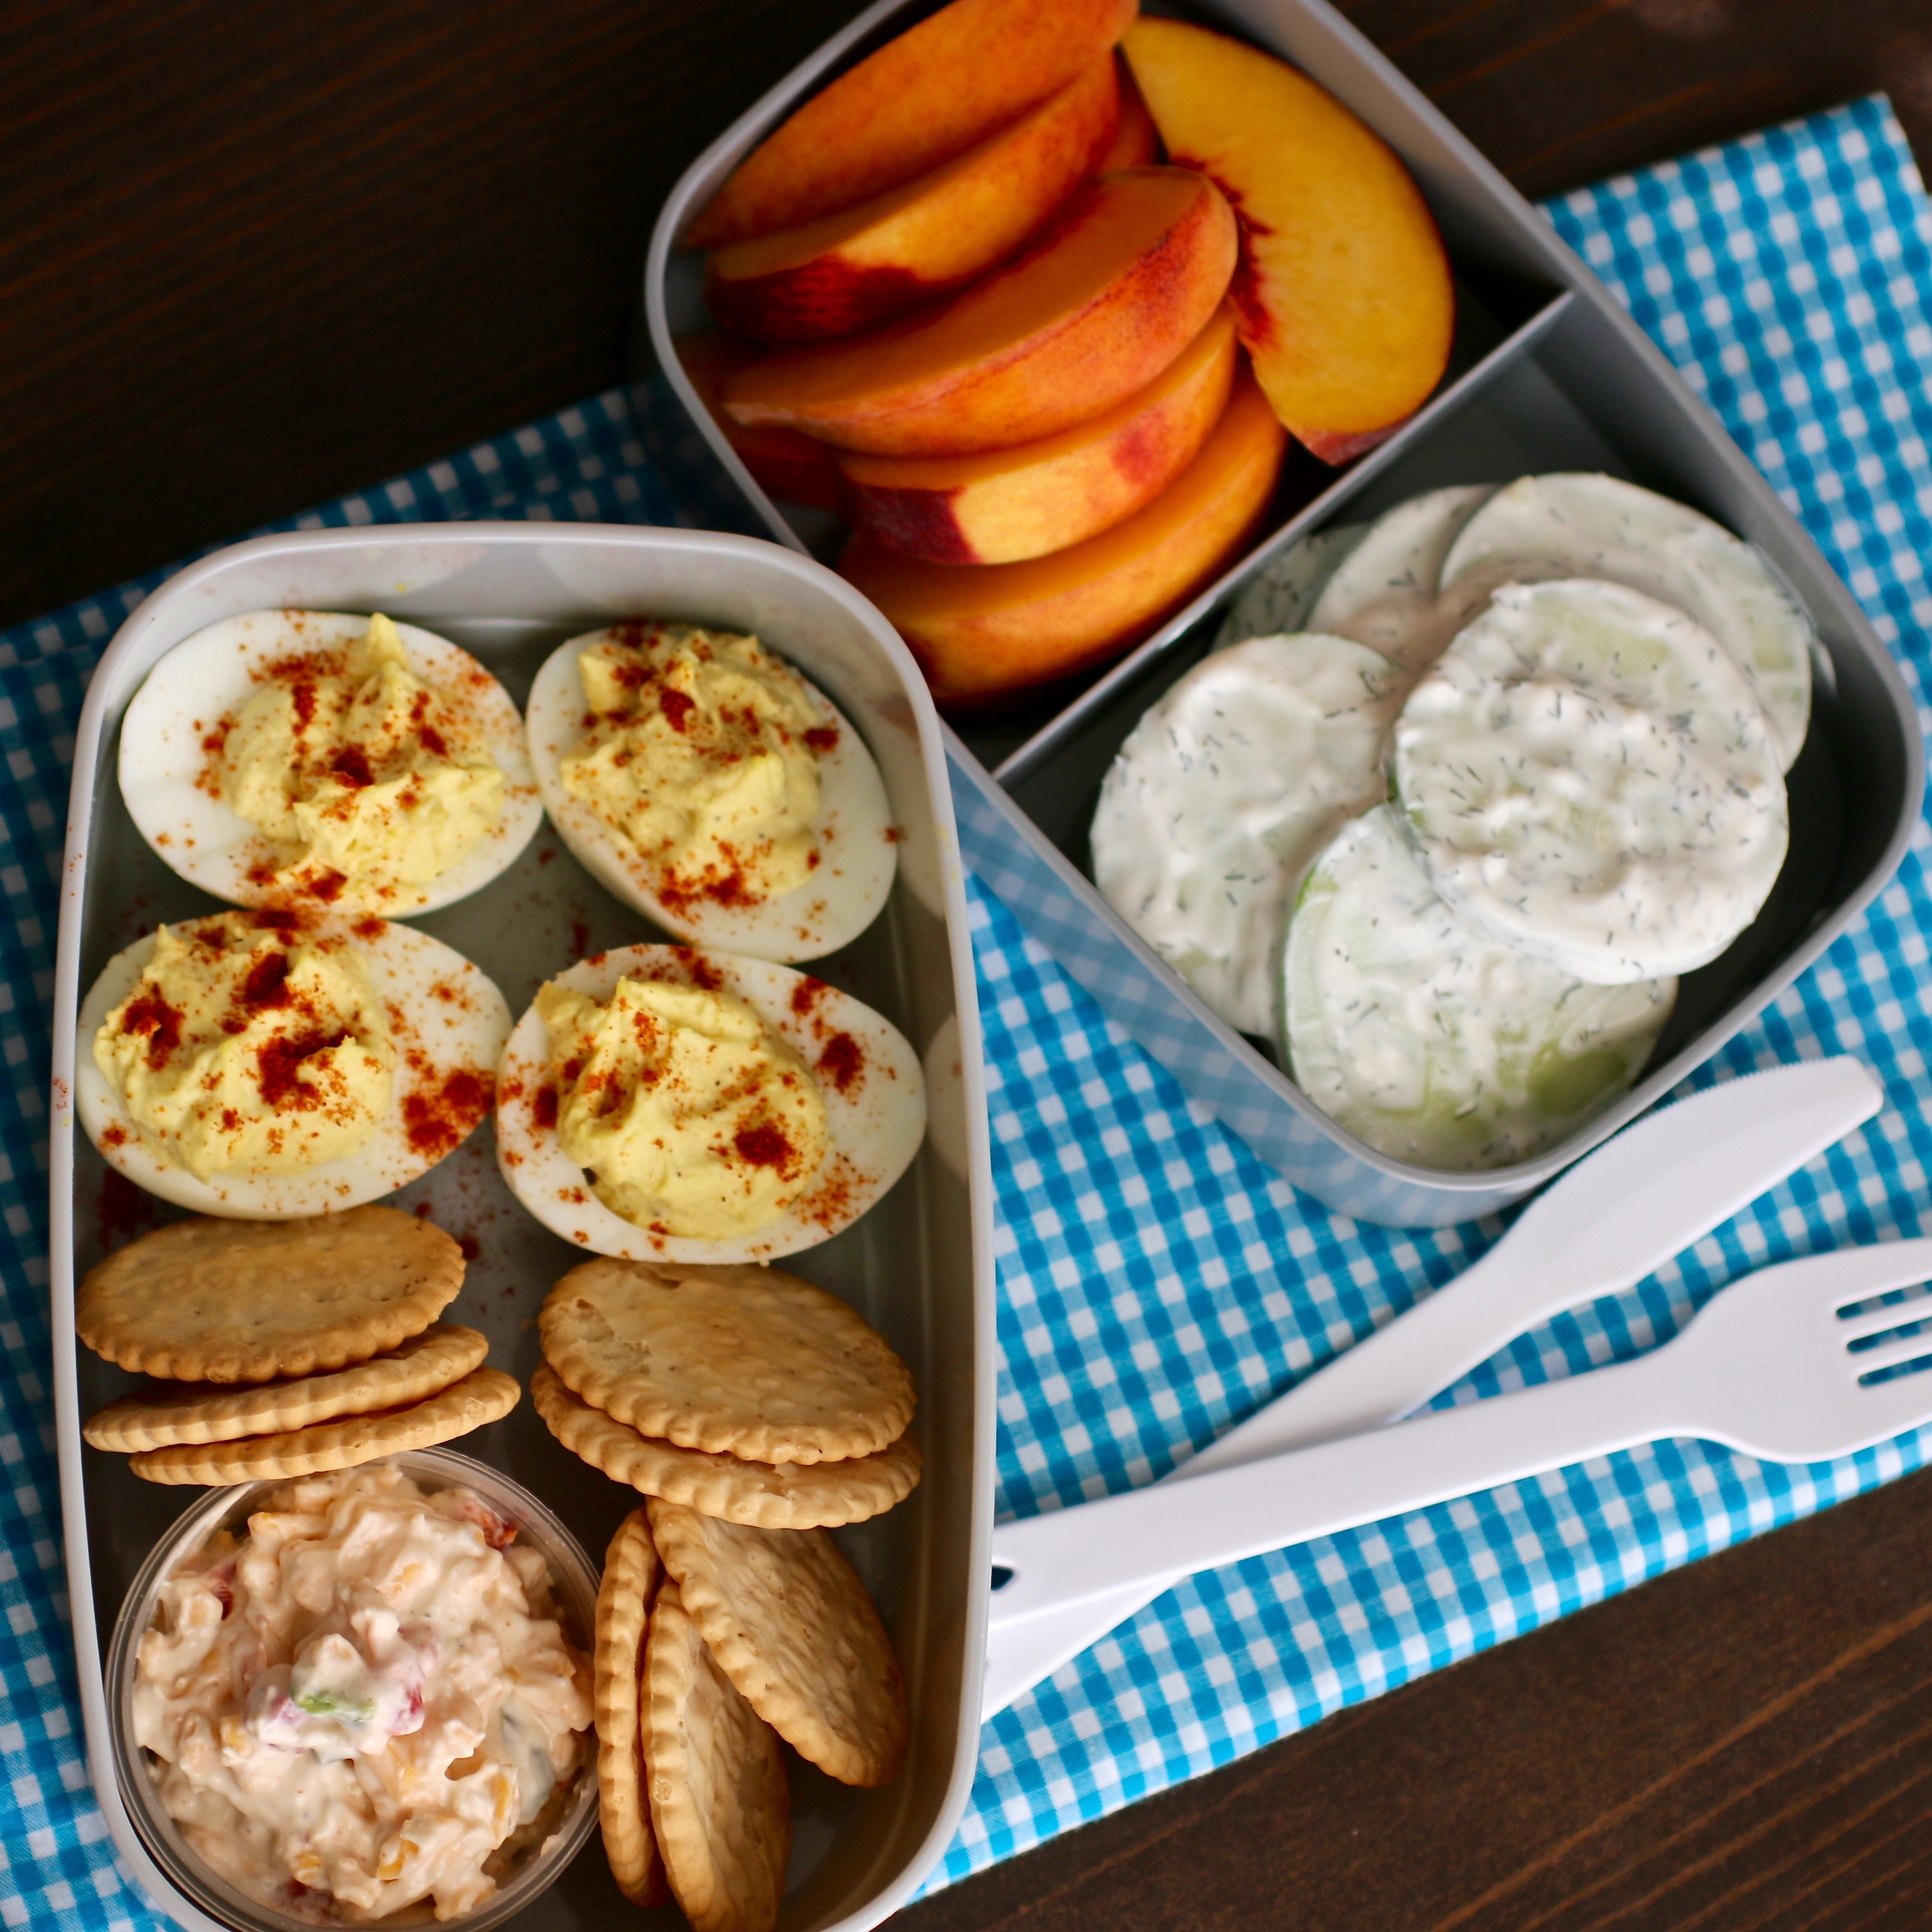 Enjoy a few Southern favorites in this clean, simple bento box. You can indulge in deviled eggs, crackers and cheese, and a creamy cucumber salad that will hit the spot and fill you up fast.